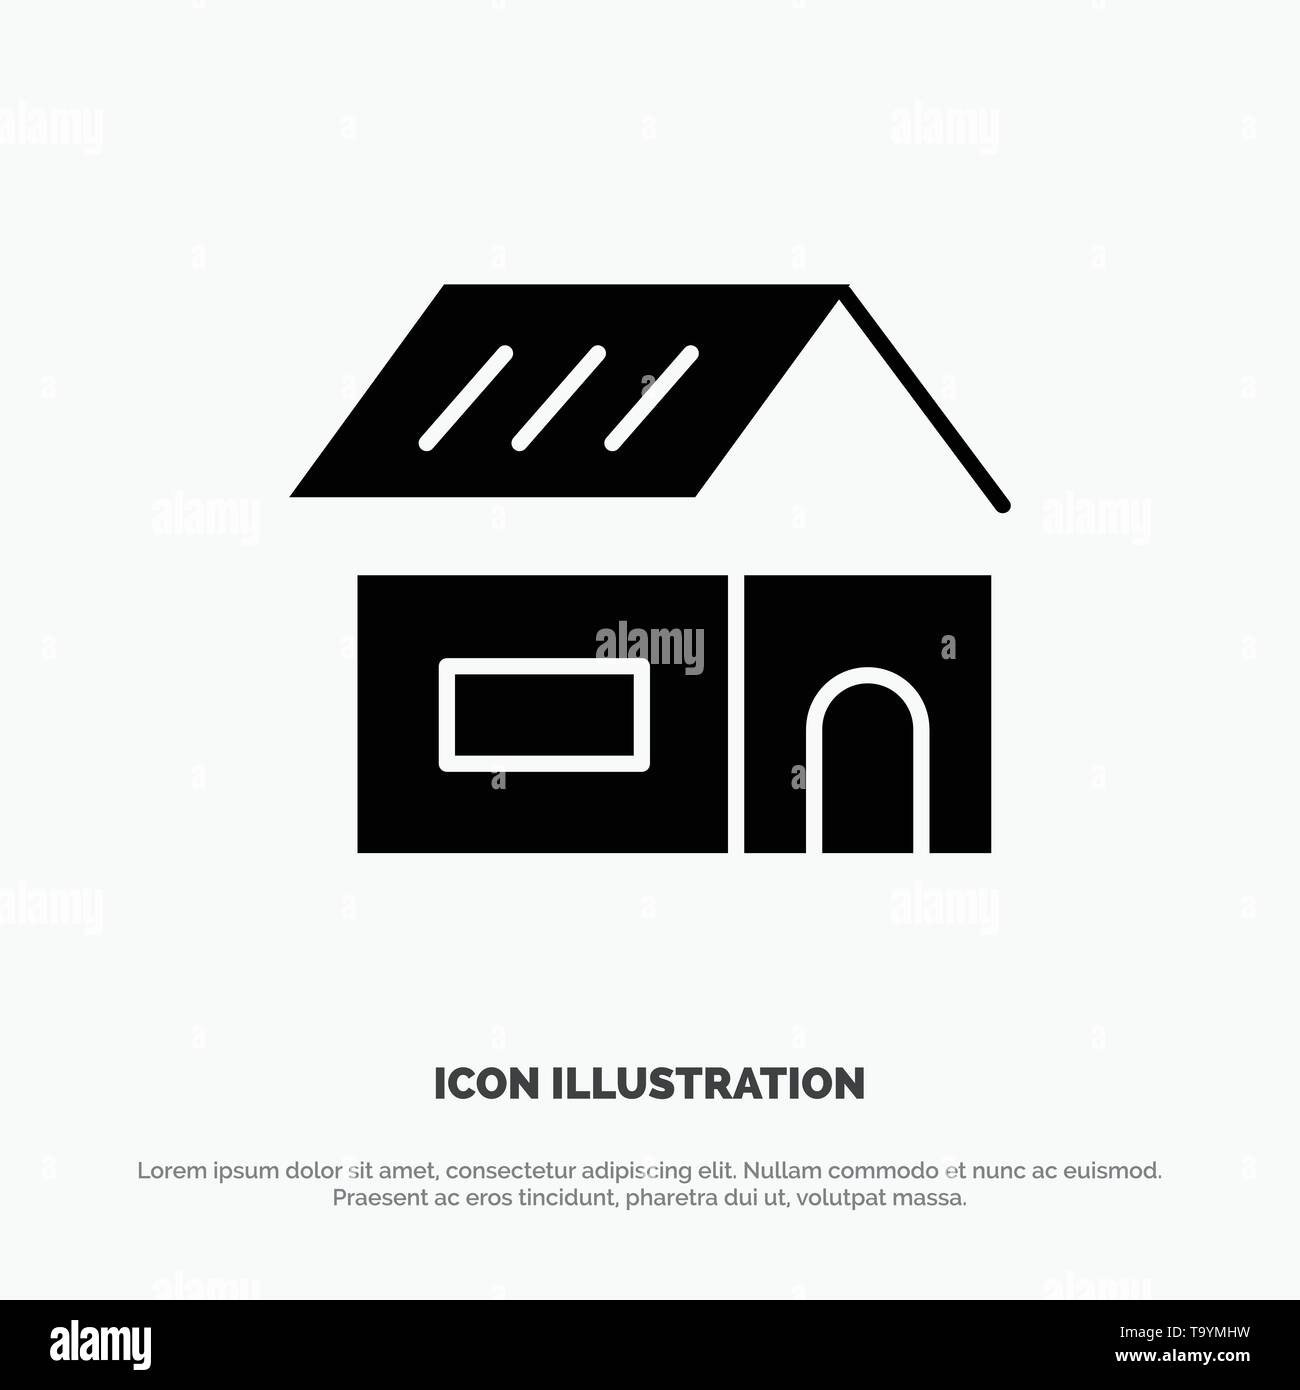 Building Build Construction Home Solid Glyph Icon Vector Stock Vector Image Art Alamy